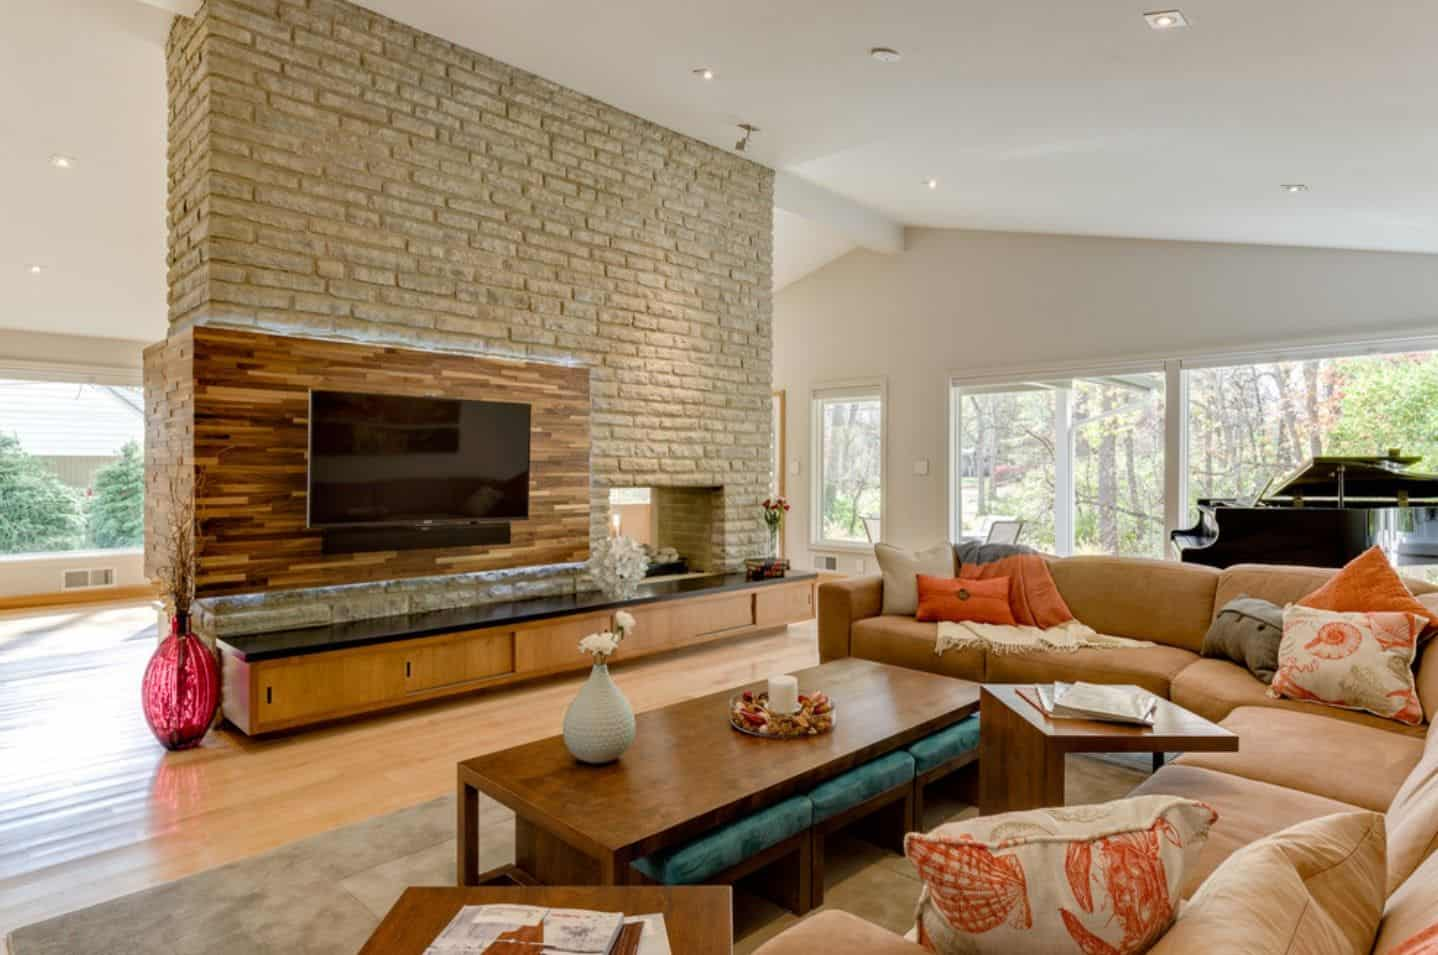 This living room showcases a television and fireplace that's fitted on the stone brick wall. It has coral sectionals and a wooden coffee table with teal stools underneath.